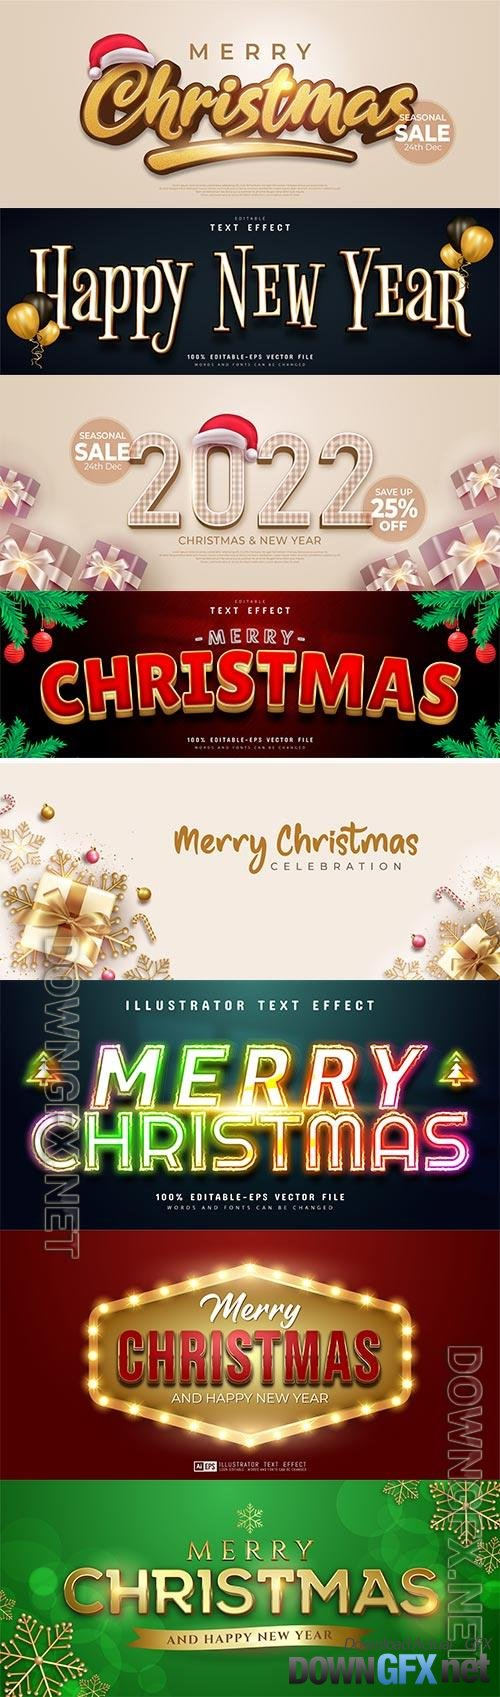 Merry christmas banner with golden christmas element decoration premium vector